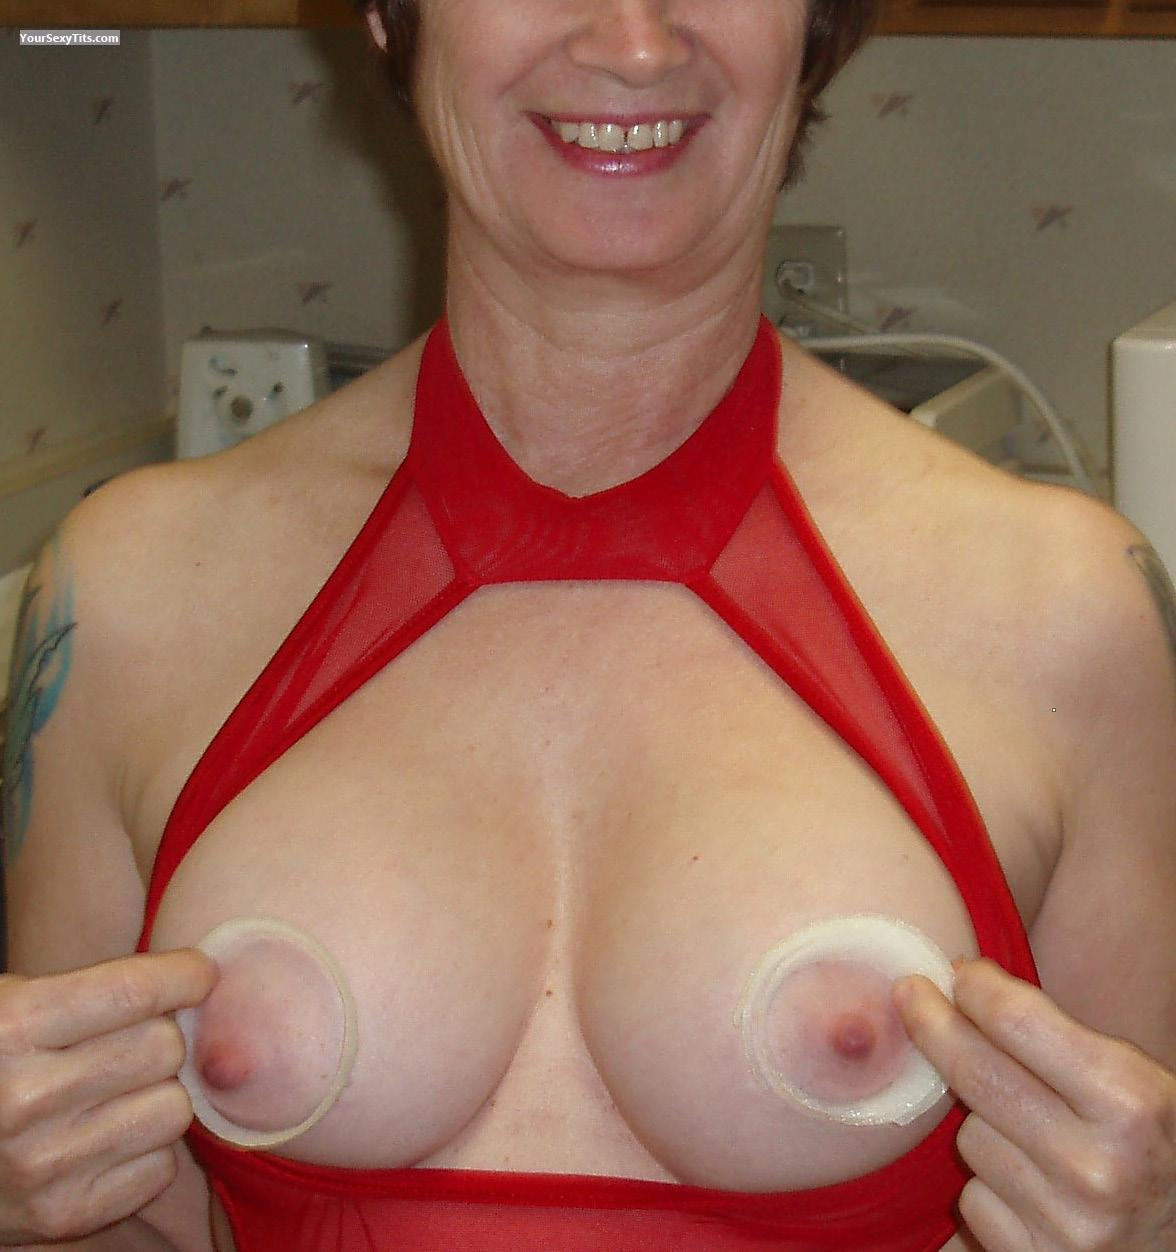 Tit Flash: Medium Tits - Tanseeker from United States